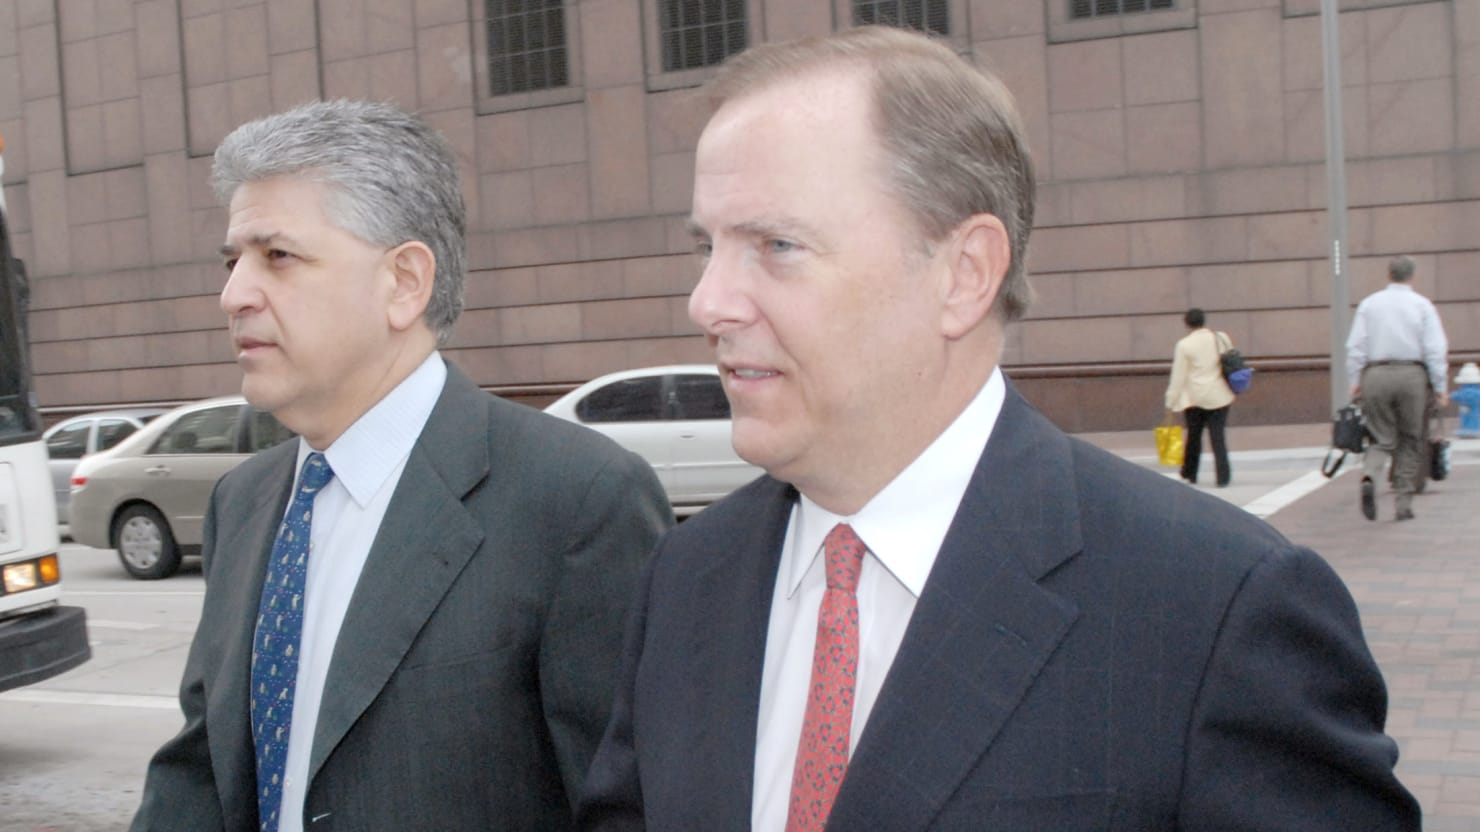 Disgraced Enron Chief Jeffrey Skilling Released From Custody